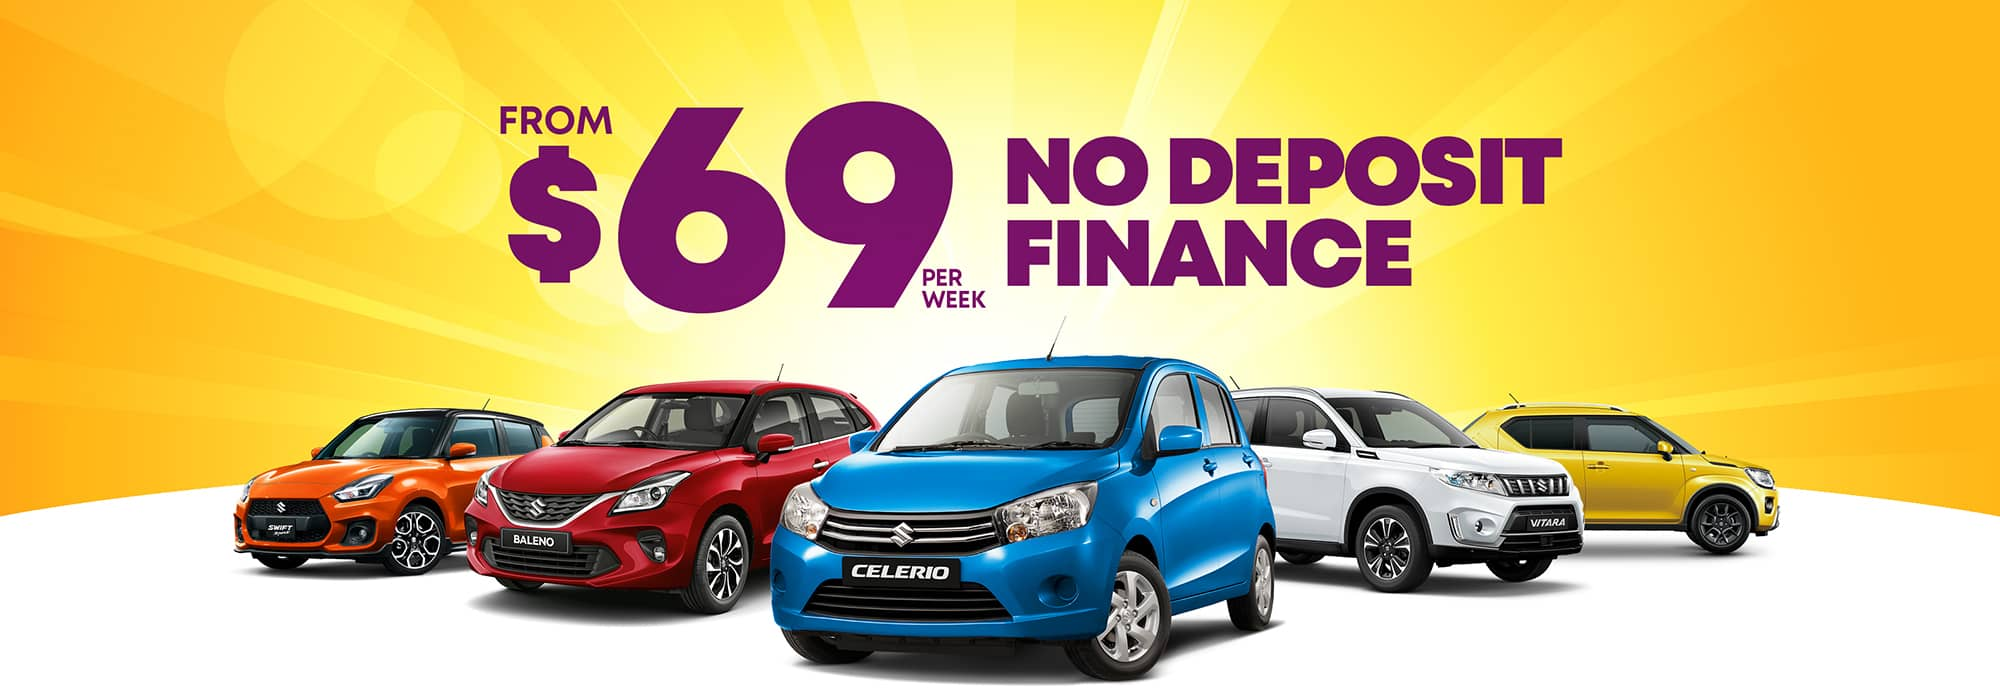 No Deposit Finance from $69 per week